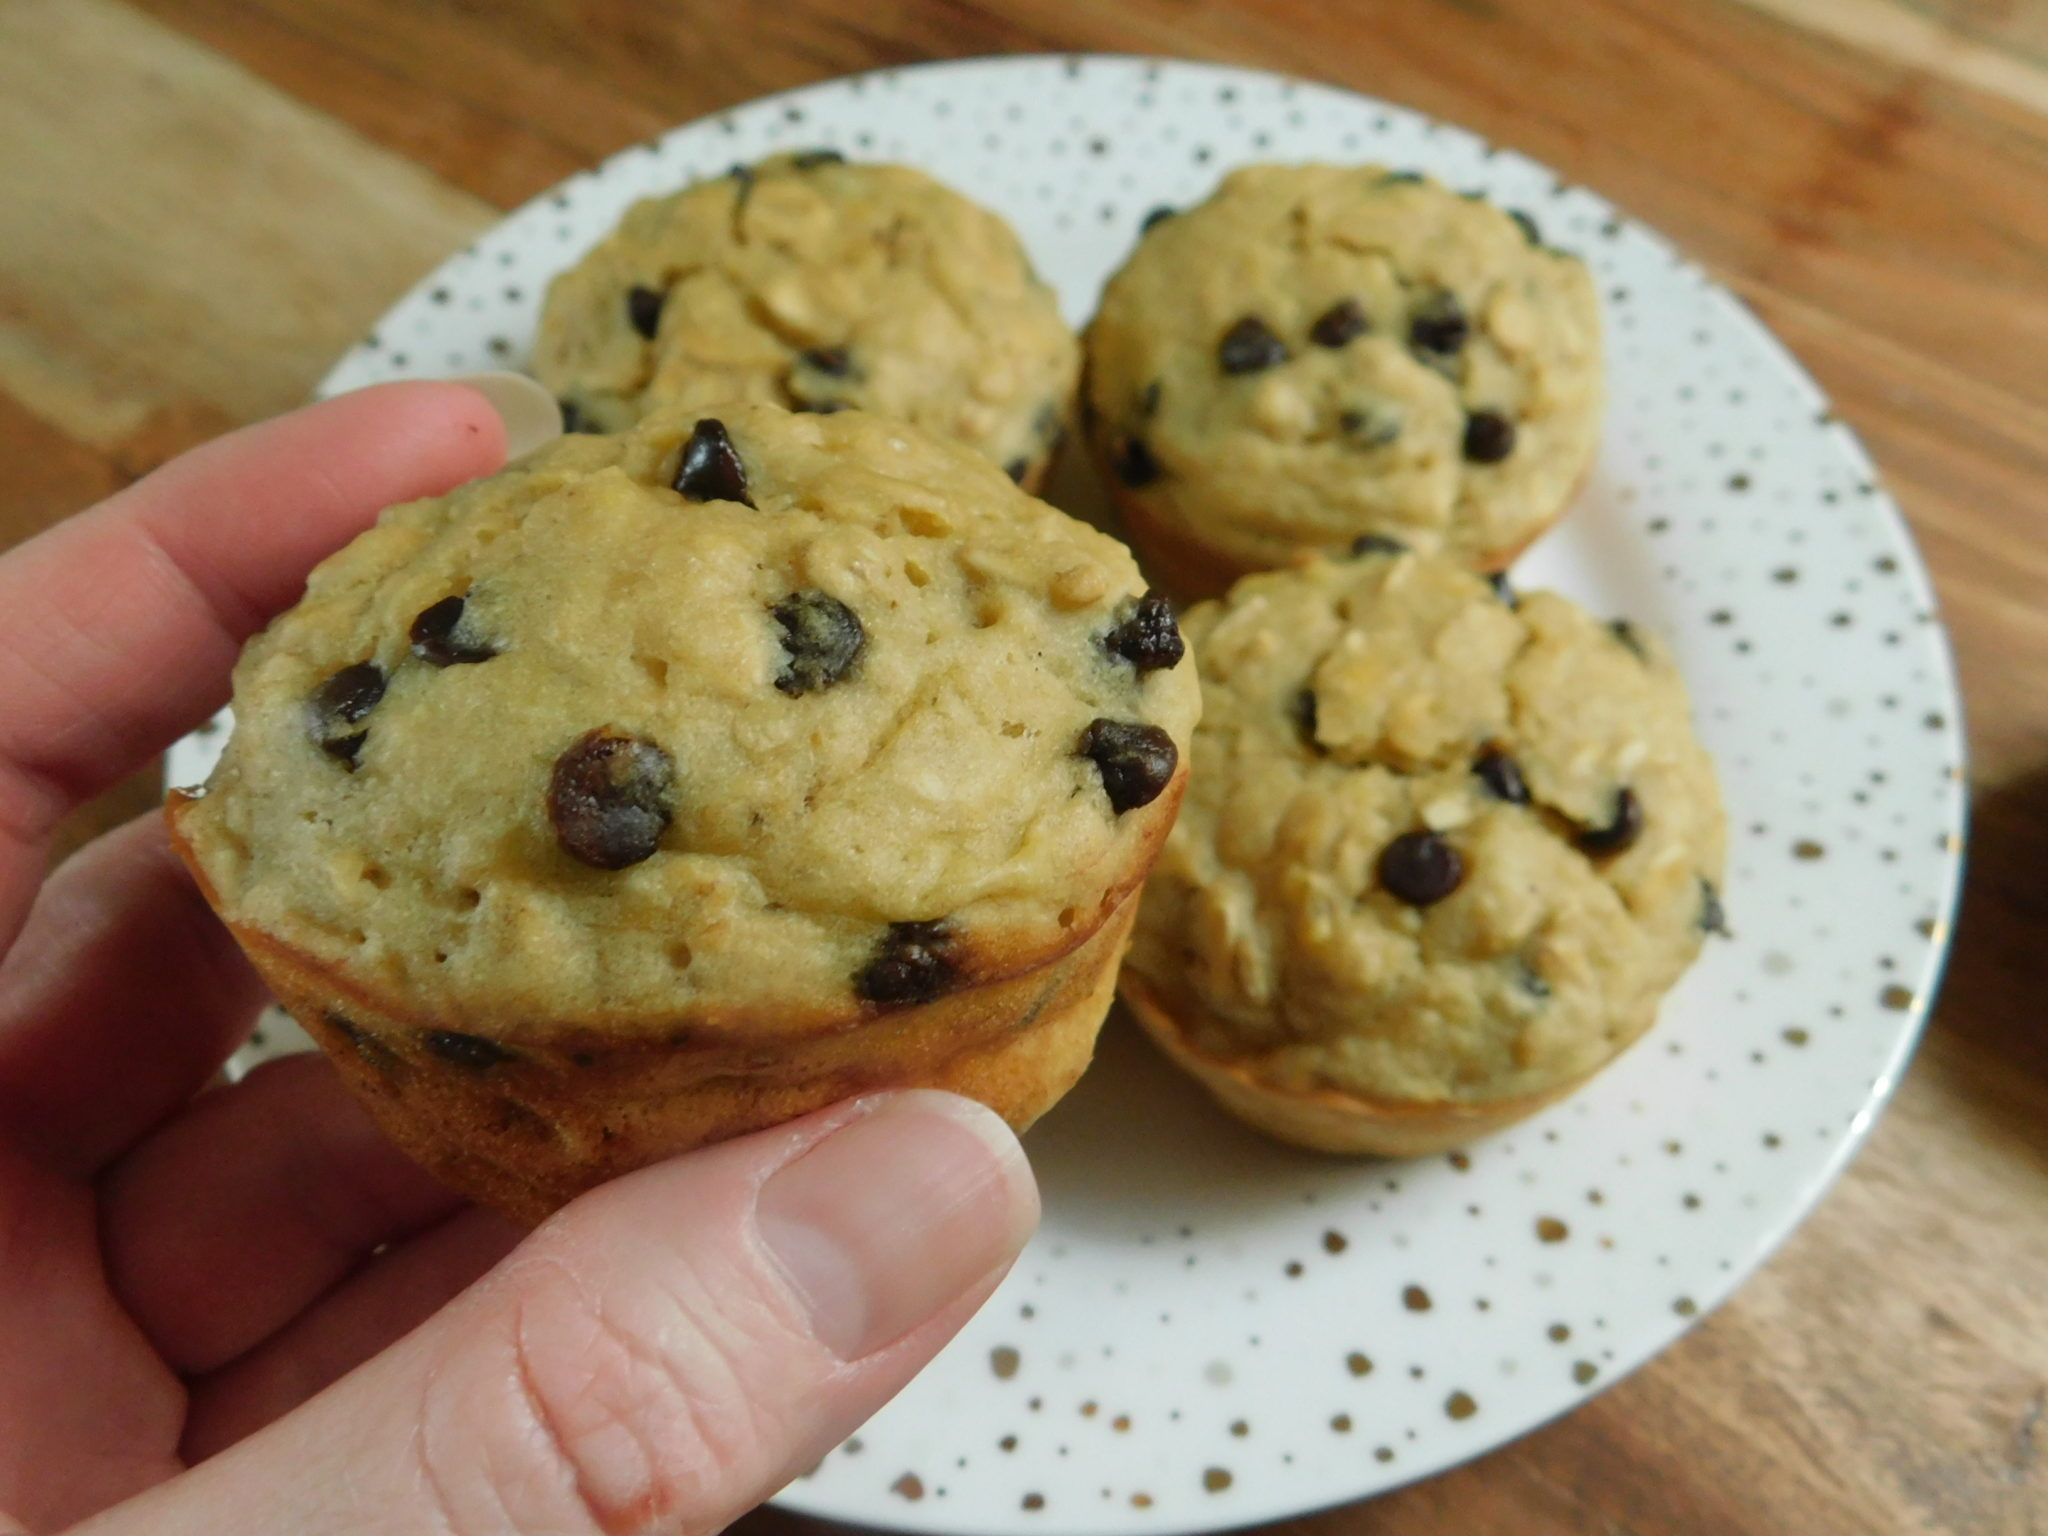 How to make banana chocolate chip muffins ingredients